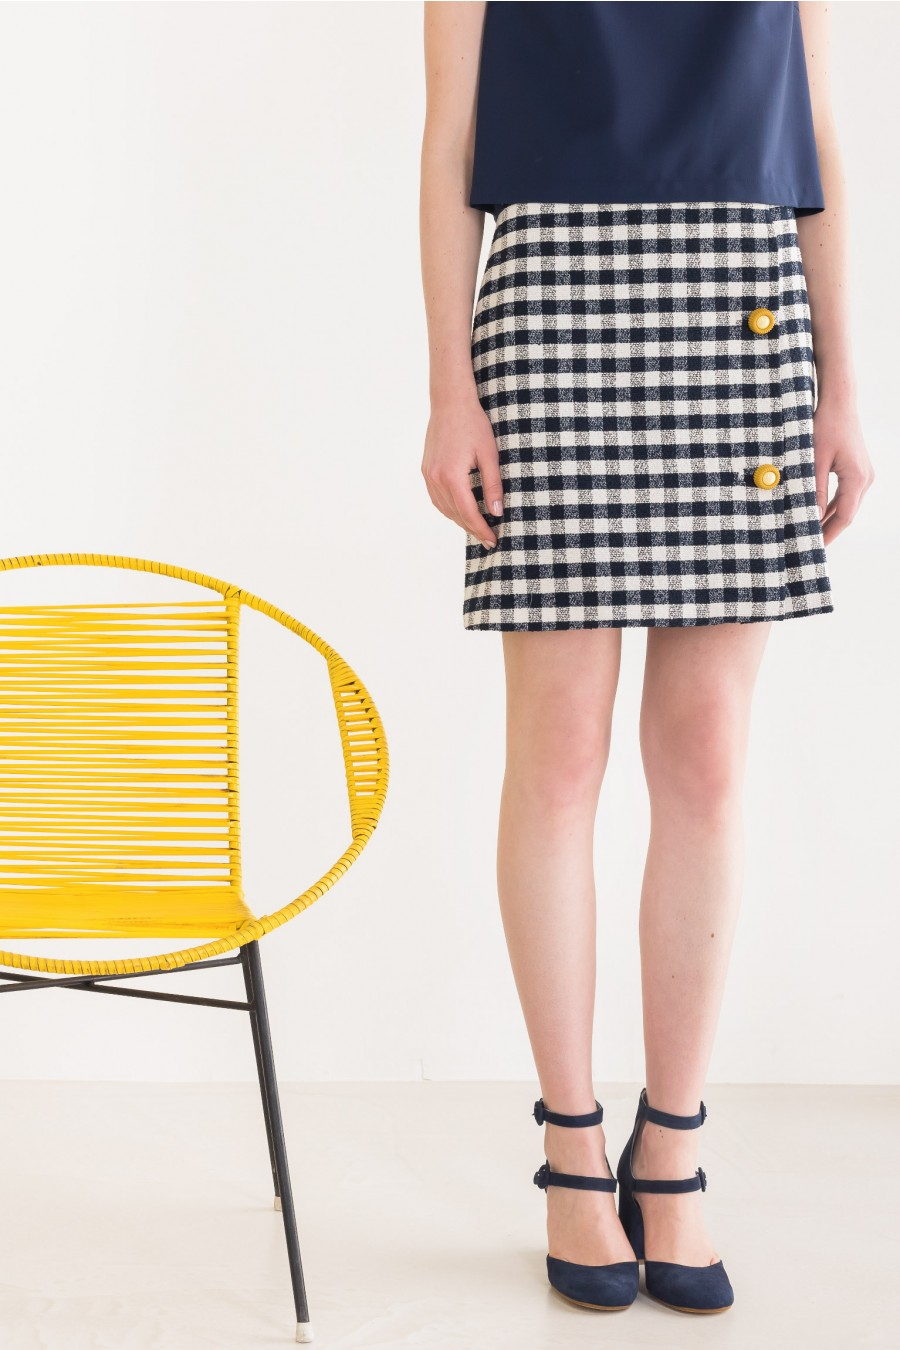 Blue skirt with yellow buttons